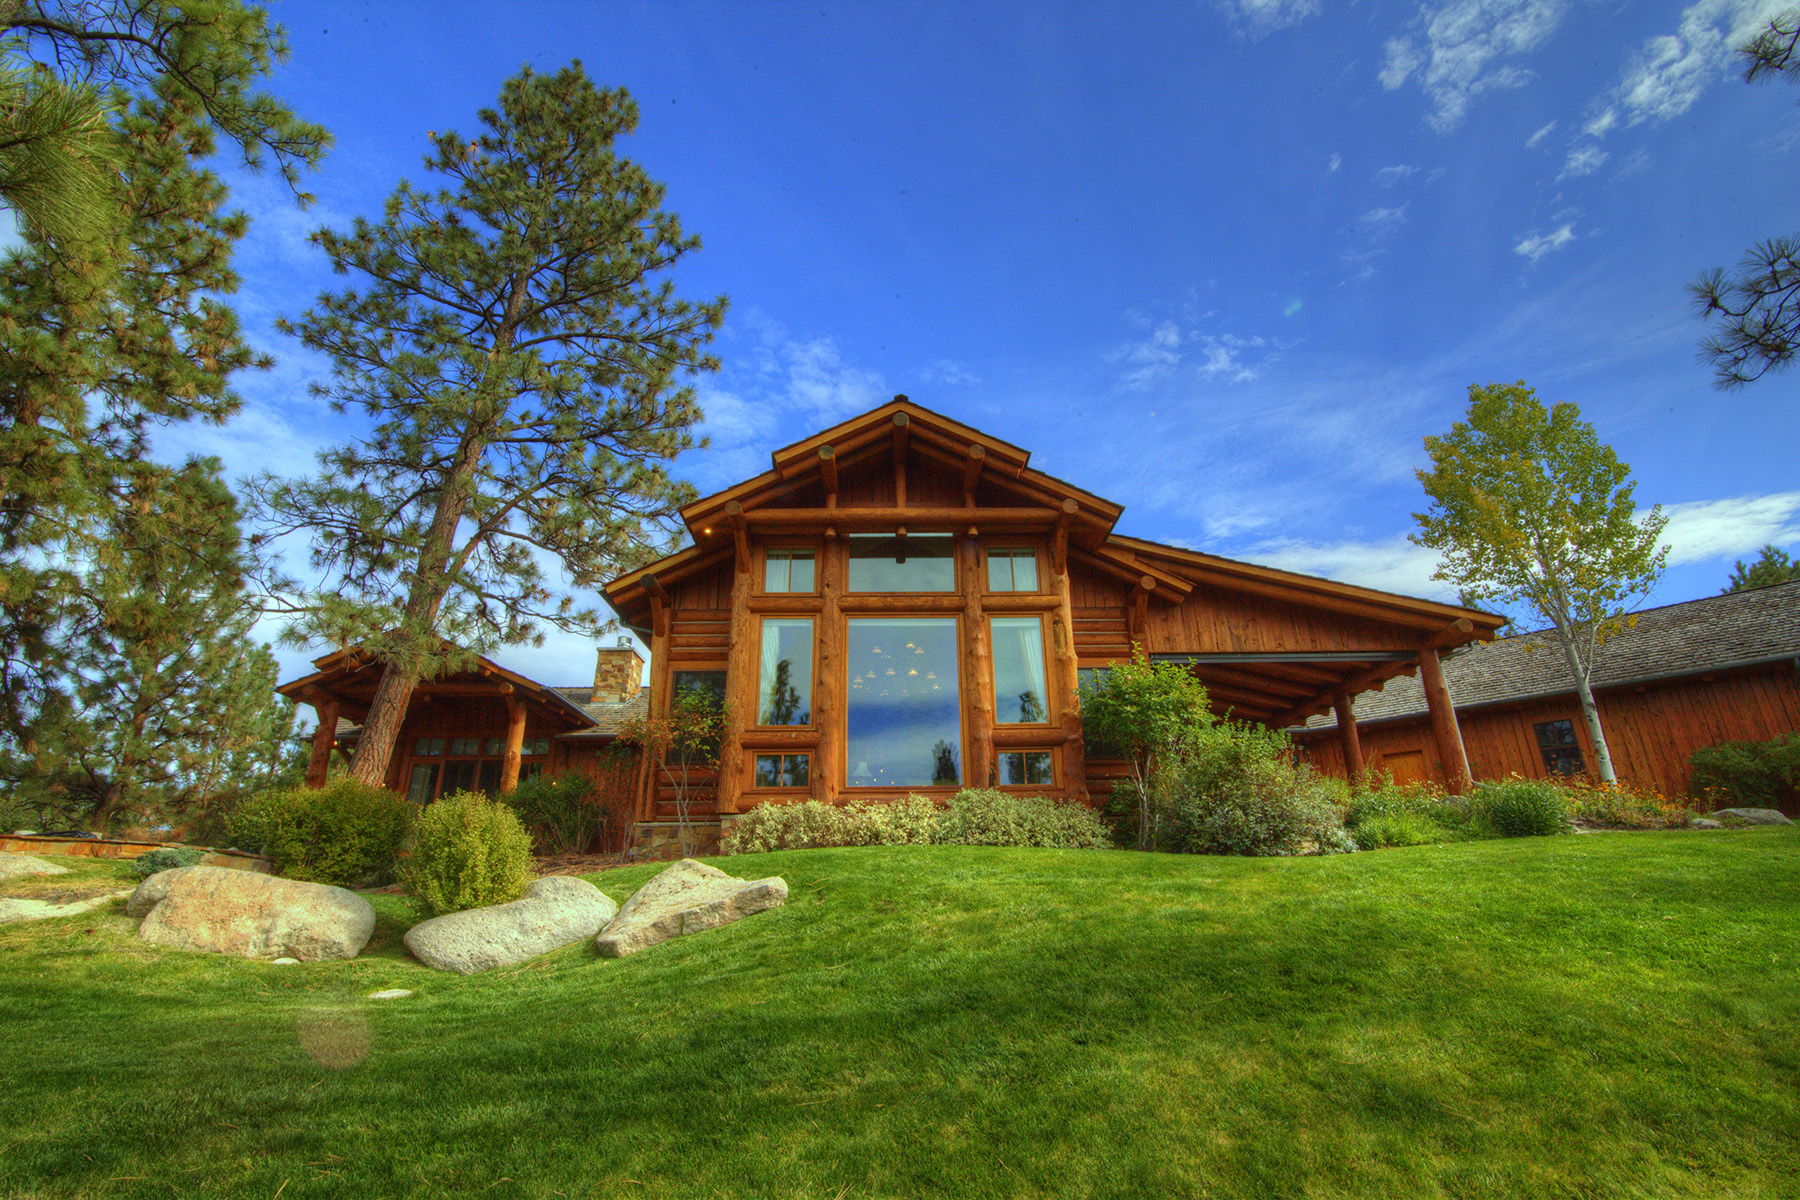 Single Family Home for Sale at 1461 Stock Farm Road 1461 Stock Farm Rd Hamilton, Montana, 59840 United States